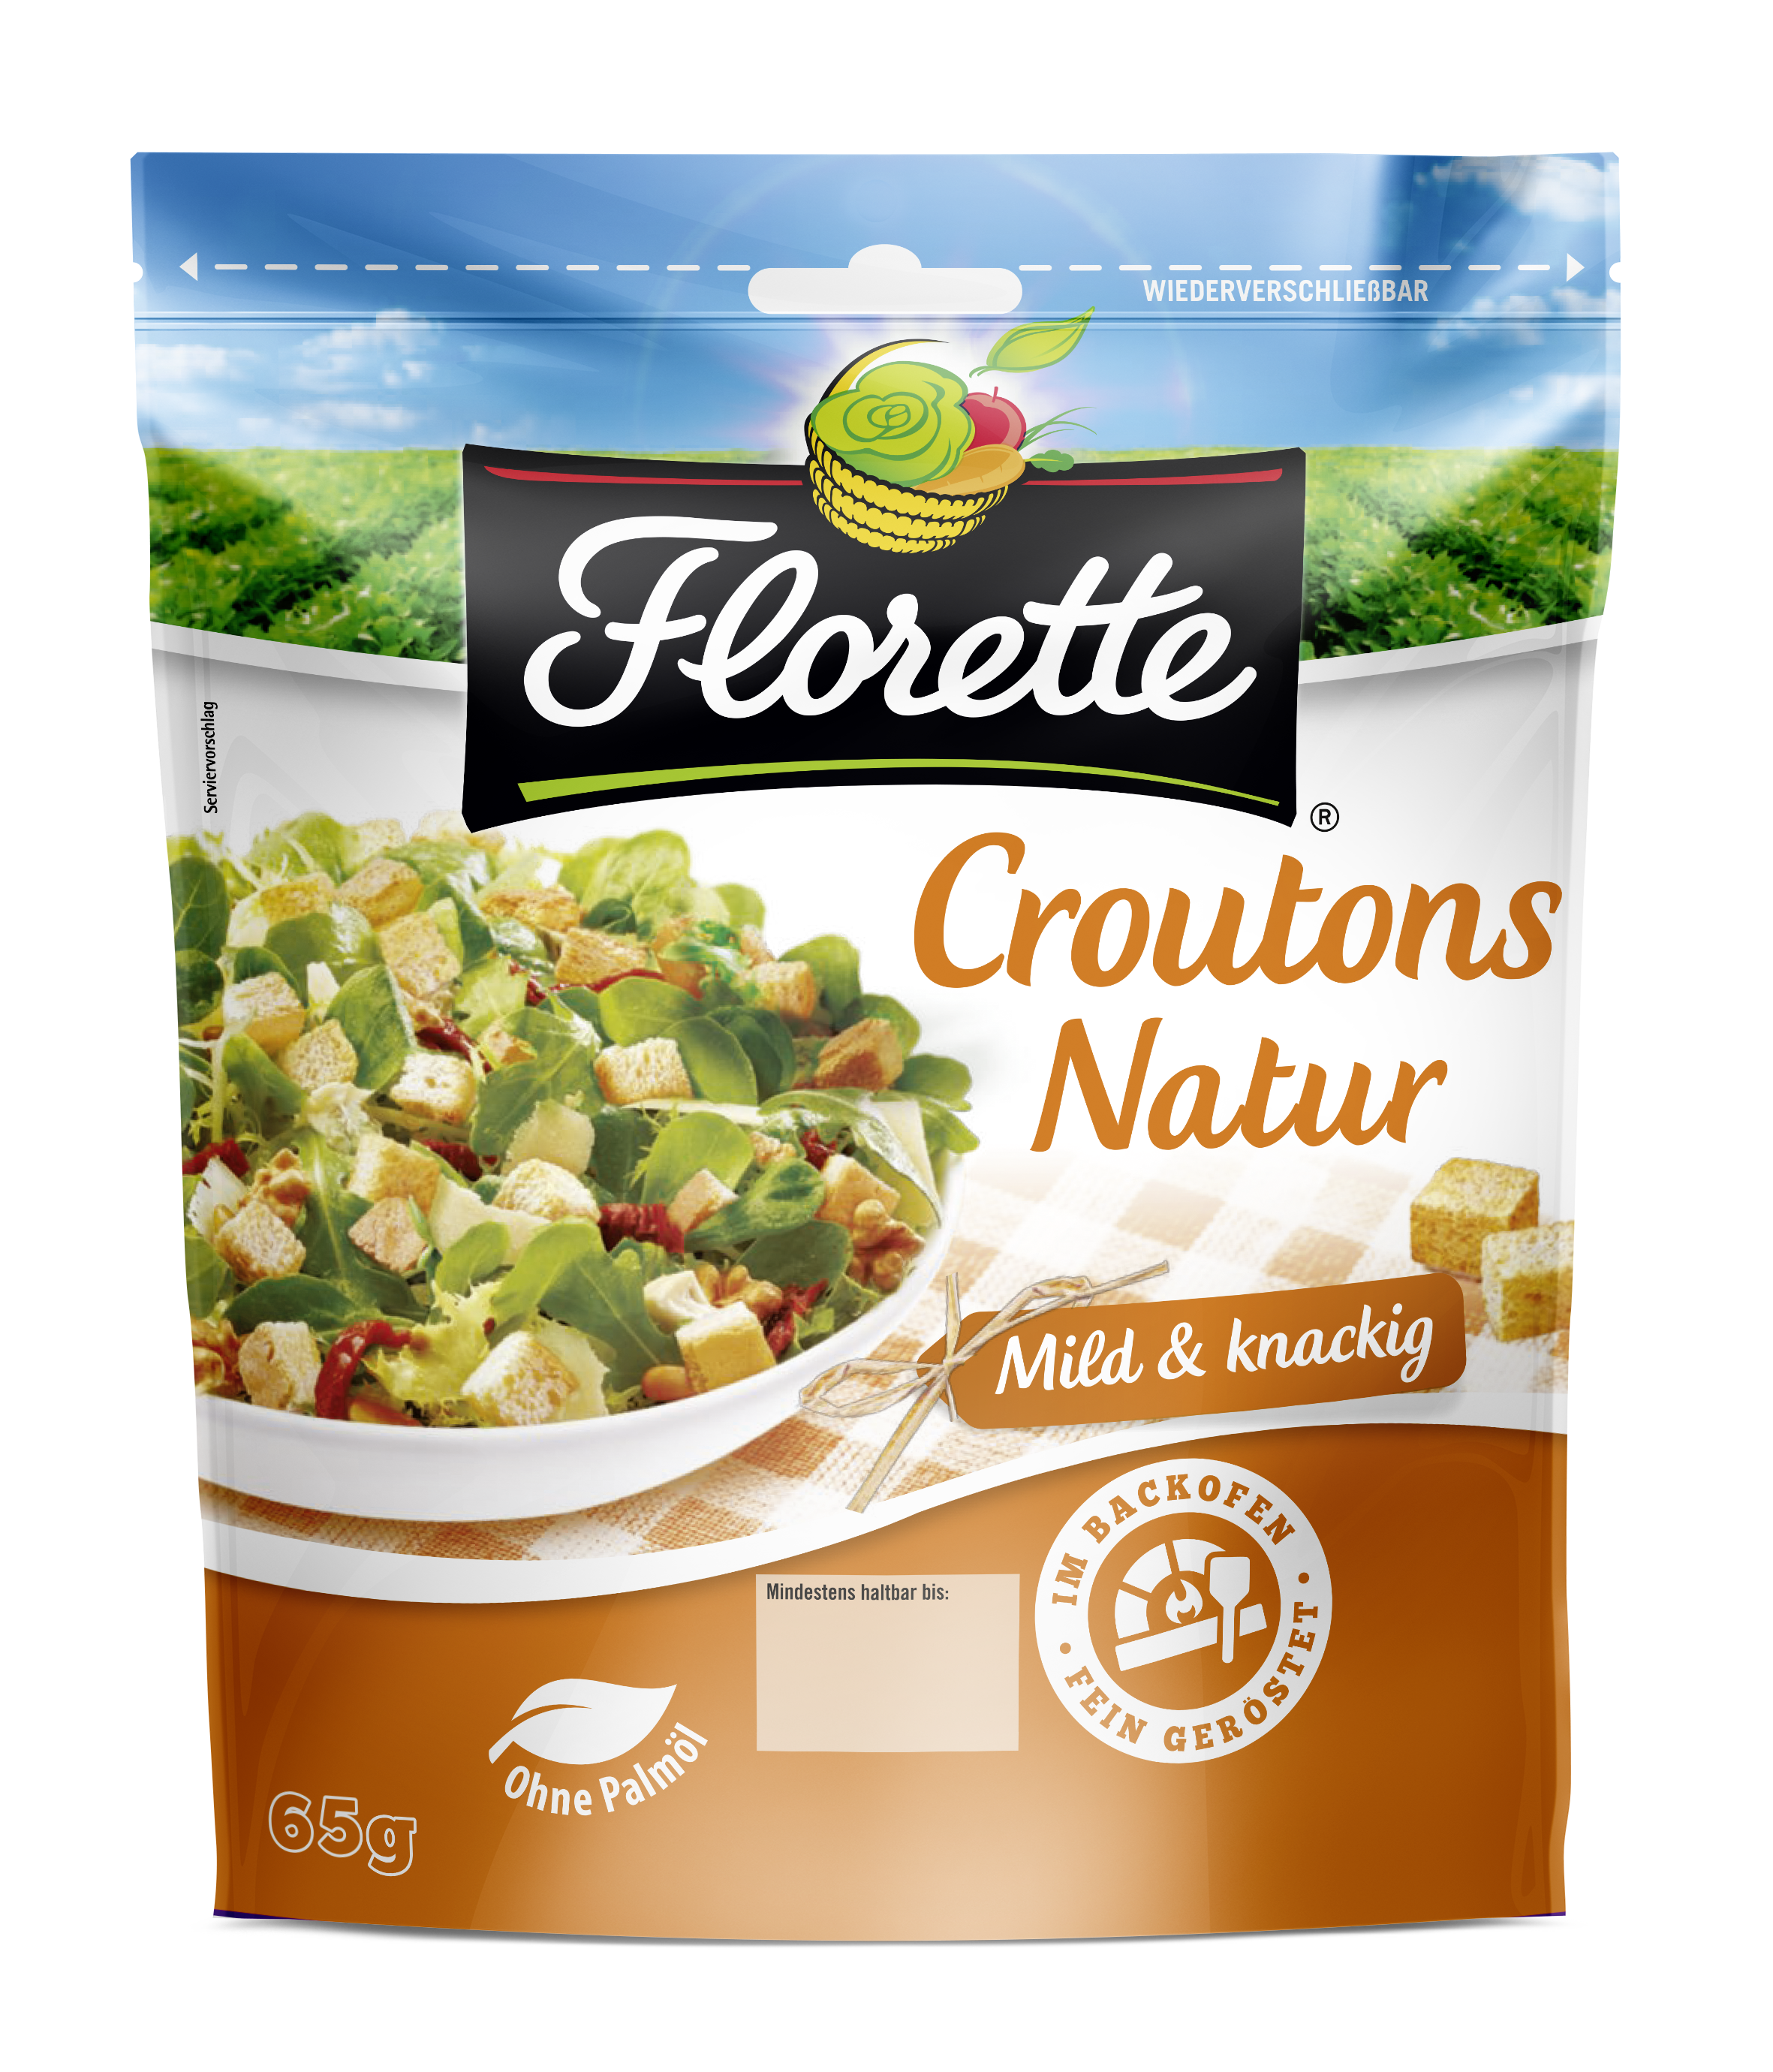 Croutons-natur-3Db